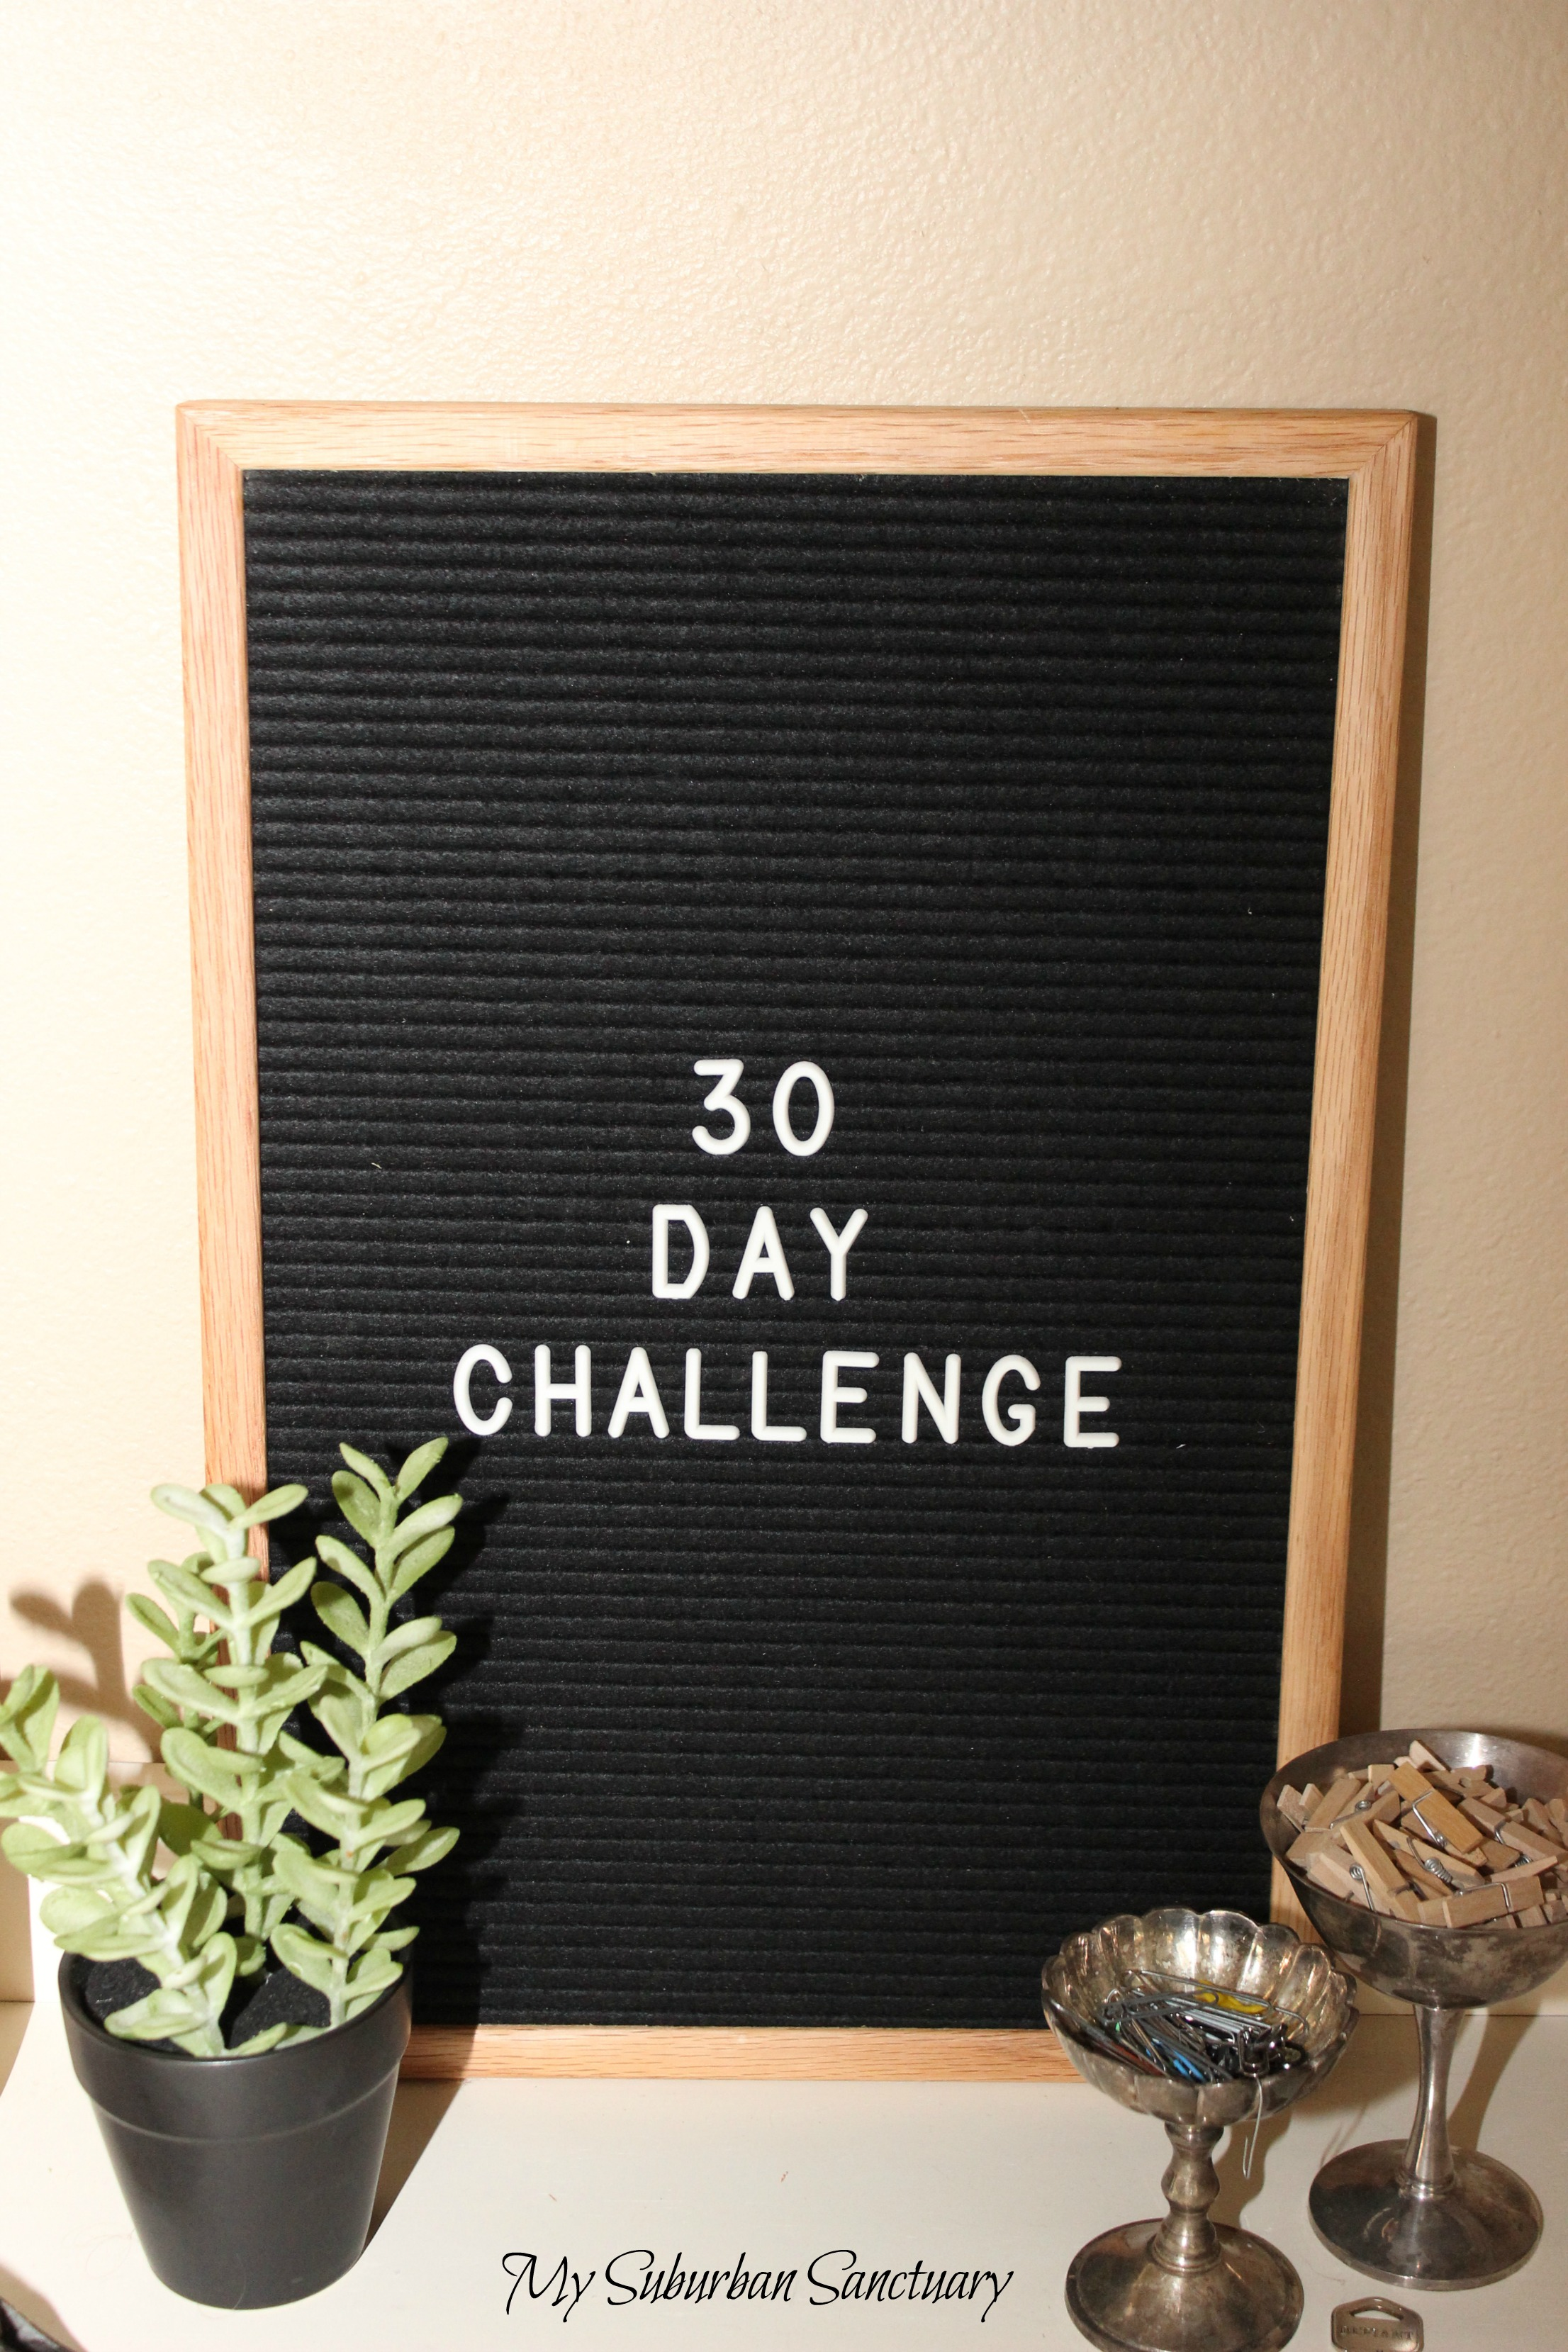 My 30 DAY CHALLENGE